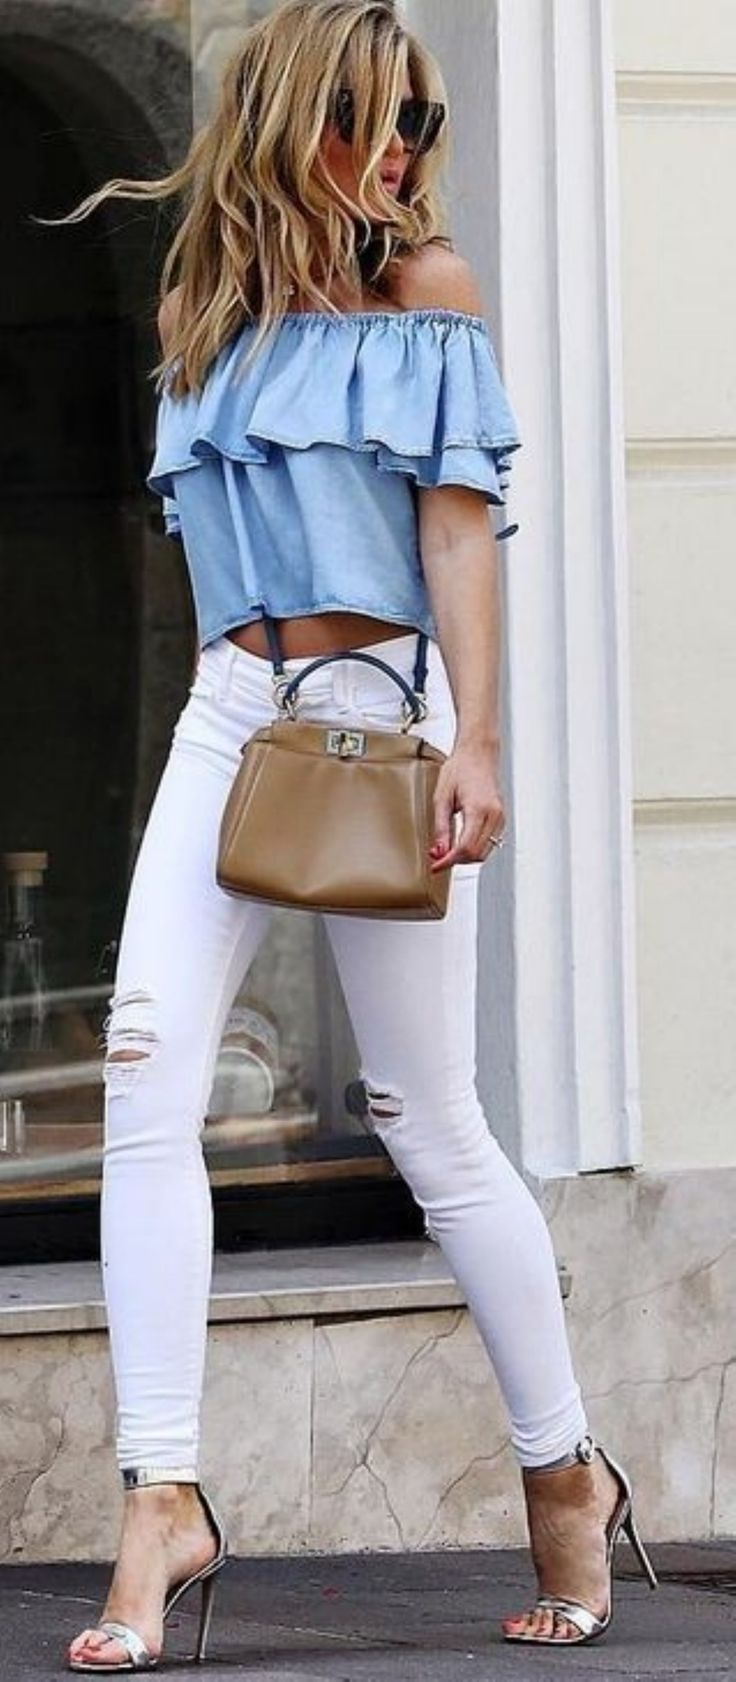 Breathtaking 50 Most Popular Summer and Spring Outfits Ideas 2017 from https://www.fashionetter.com/2017/04/21/50-popular-summer-spring-outfits-ideas-2017/